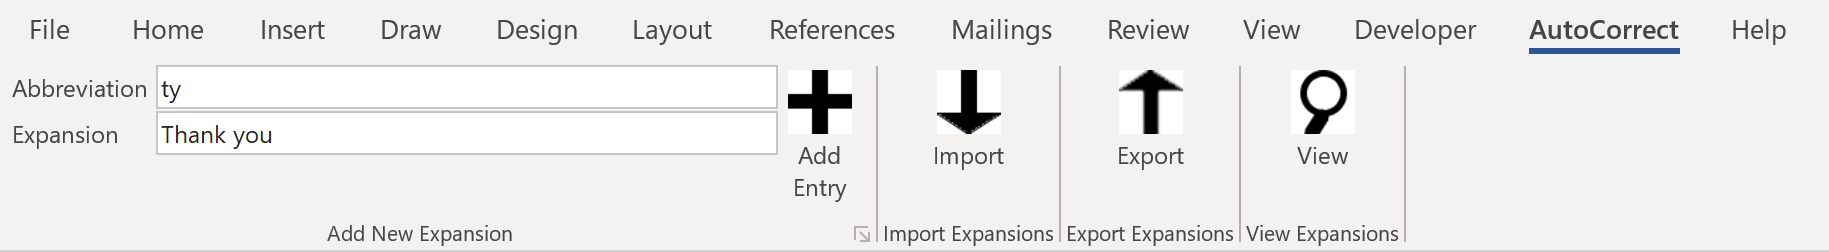 Screen shot of Word add-on. The usual ribbon at the top of the screen shows a section called 'AutoCorrect', with sections to add an entry, import and export configs, and view the config. The add entry section has a text box labeled 'Abbreviation', in which someone has typed 'ty', and a text box labeled 'Expansion', in which someone has typed 'Thank you'.